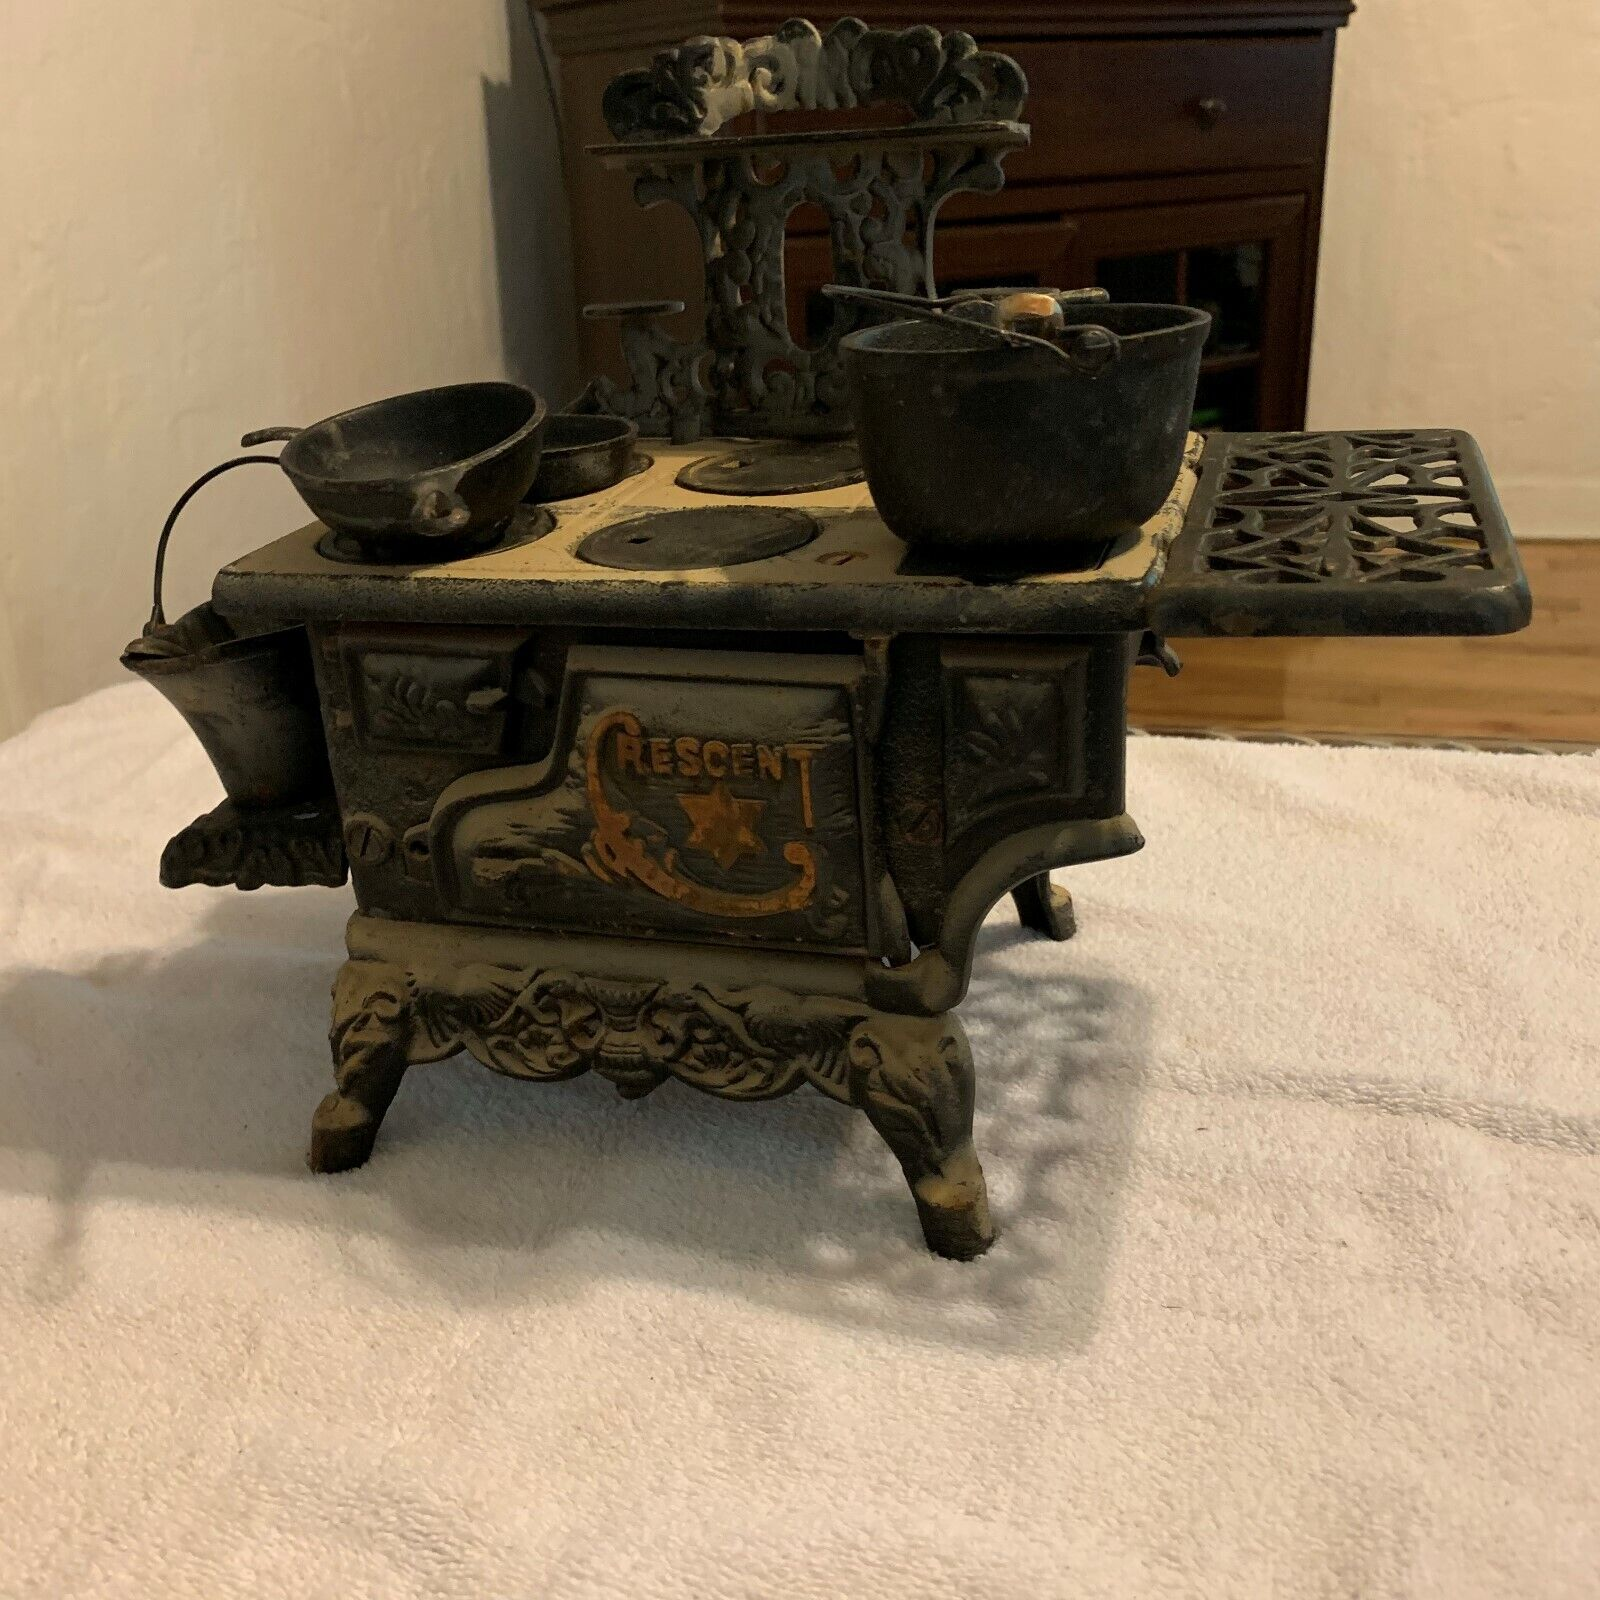 Vintage Mini Crescent Cast Iron Stove with accessories.8 1 2  x 6  x 6